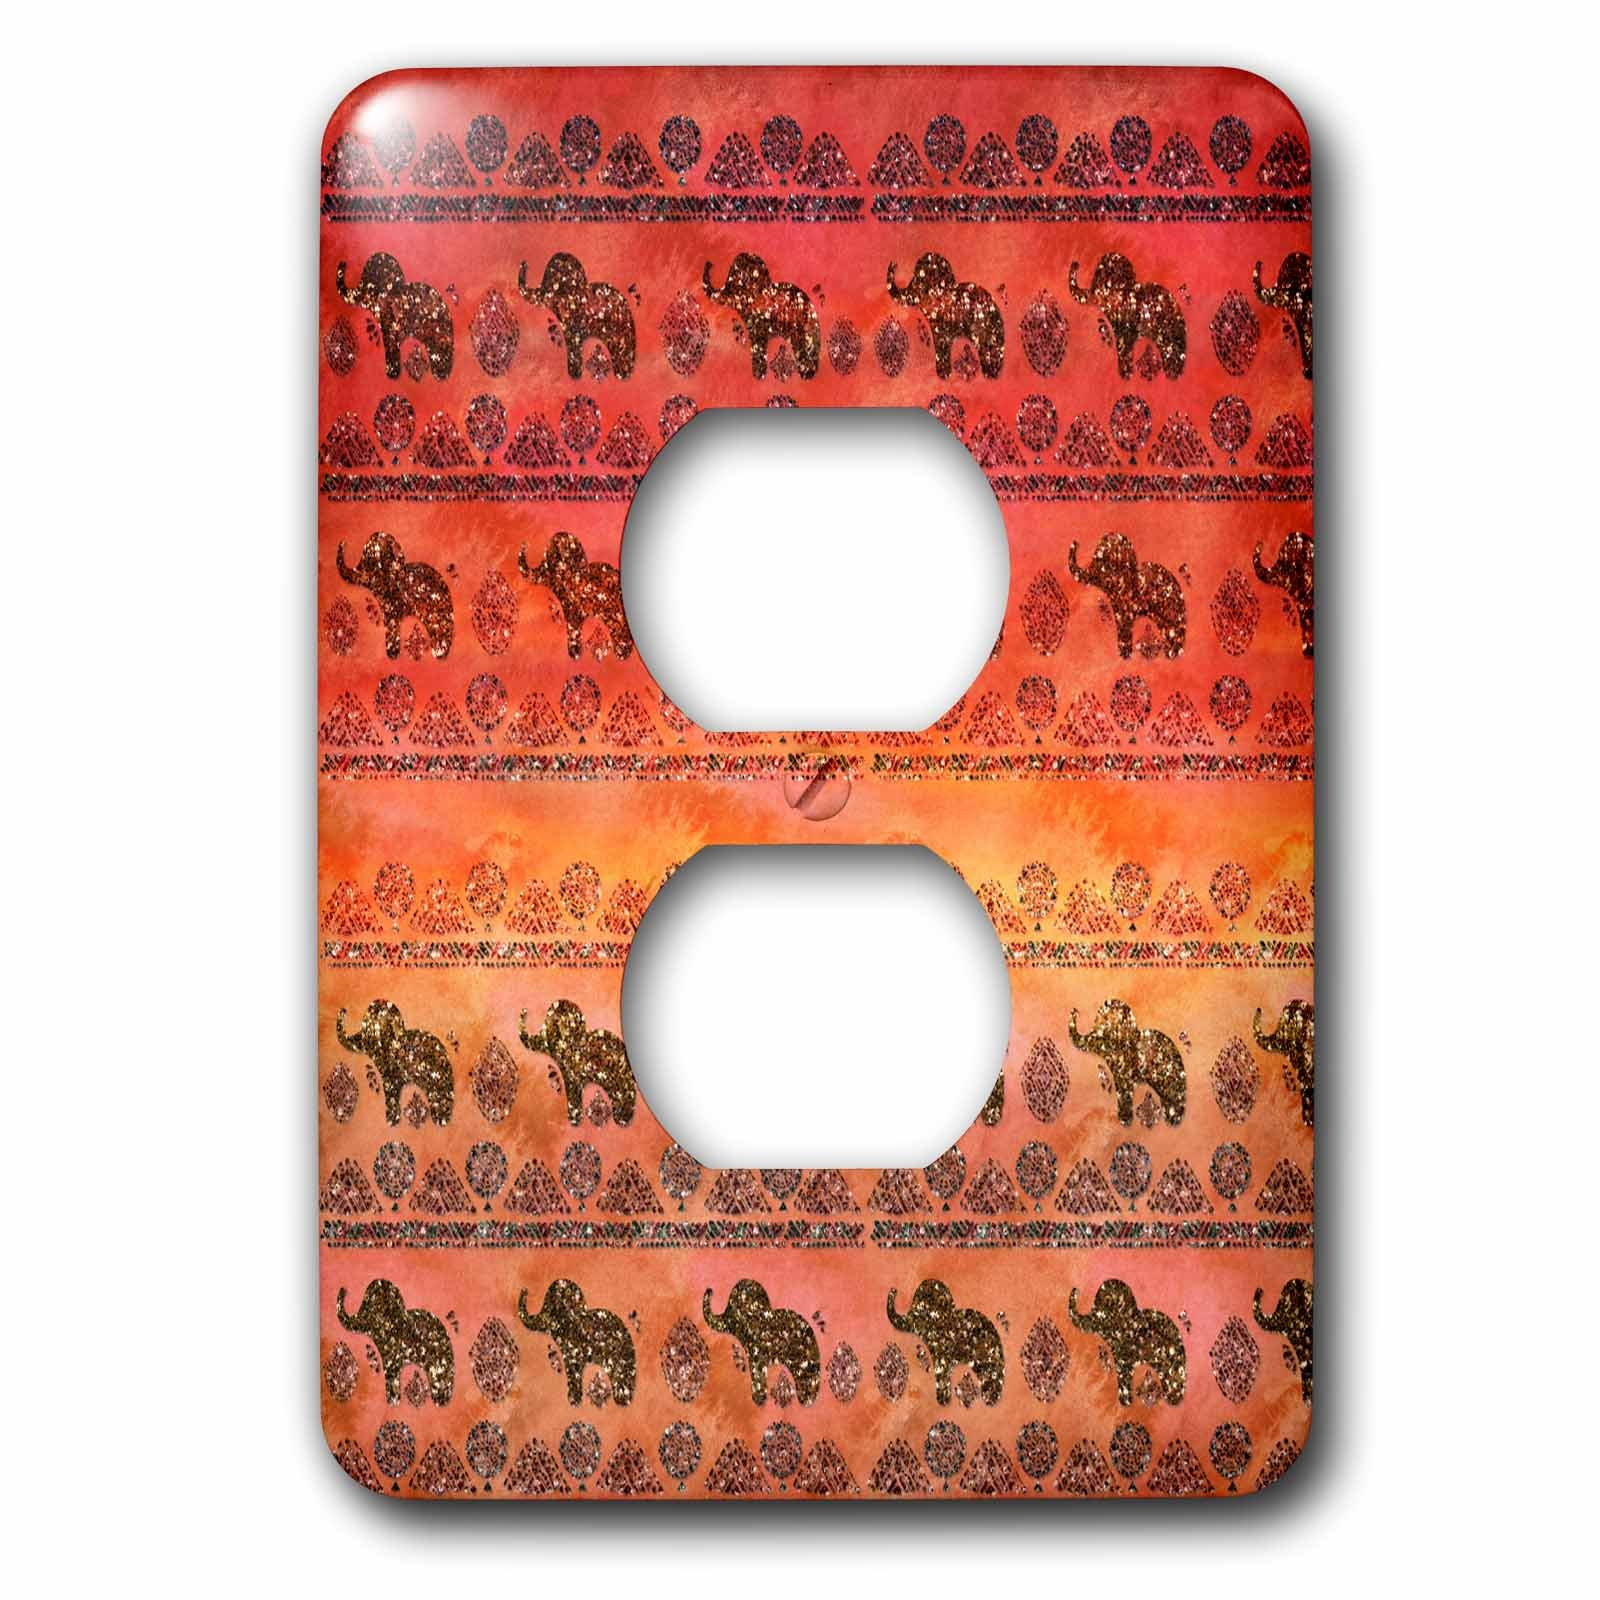 3dRose Uta Naumann Faux Glitter Pattern - Luxury Shiny Chic Animal Elephant Africa Safari Pattern on Faux Metal - Light Switch Covers - 2 plug outlet cover (lsp_269041_6)